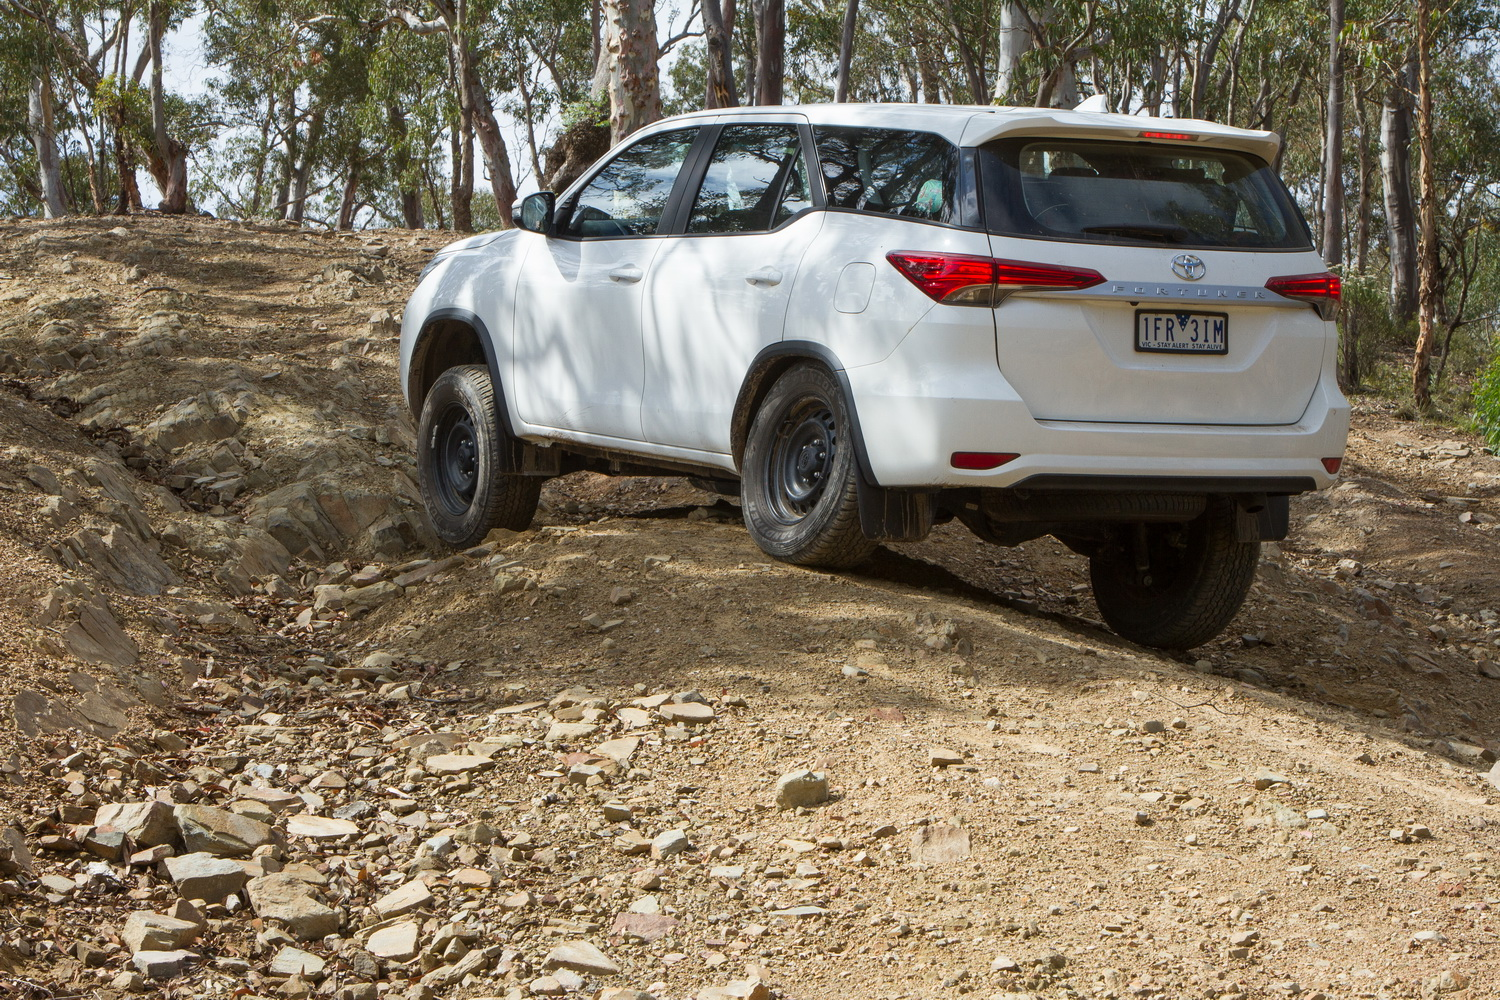 Toyota Fortuner and Toyota HiLux technical analysis - 4WD